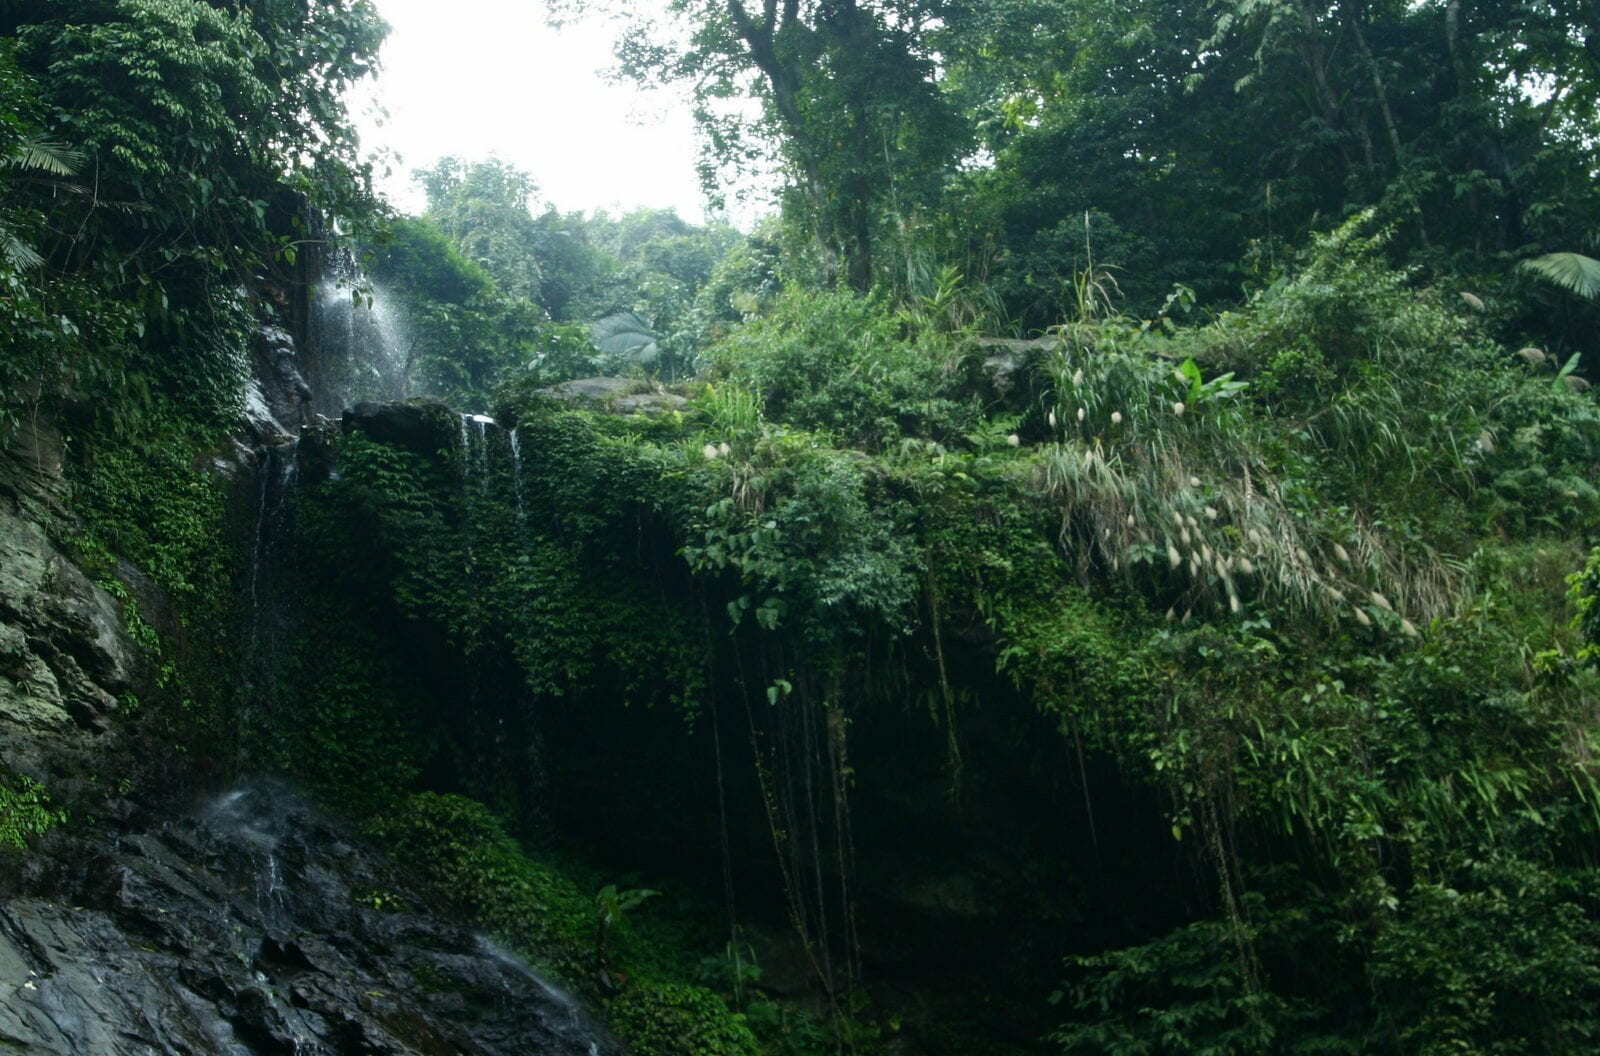 Image of a waterfall in the Ba Vi National Forest in Vietnam